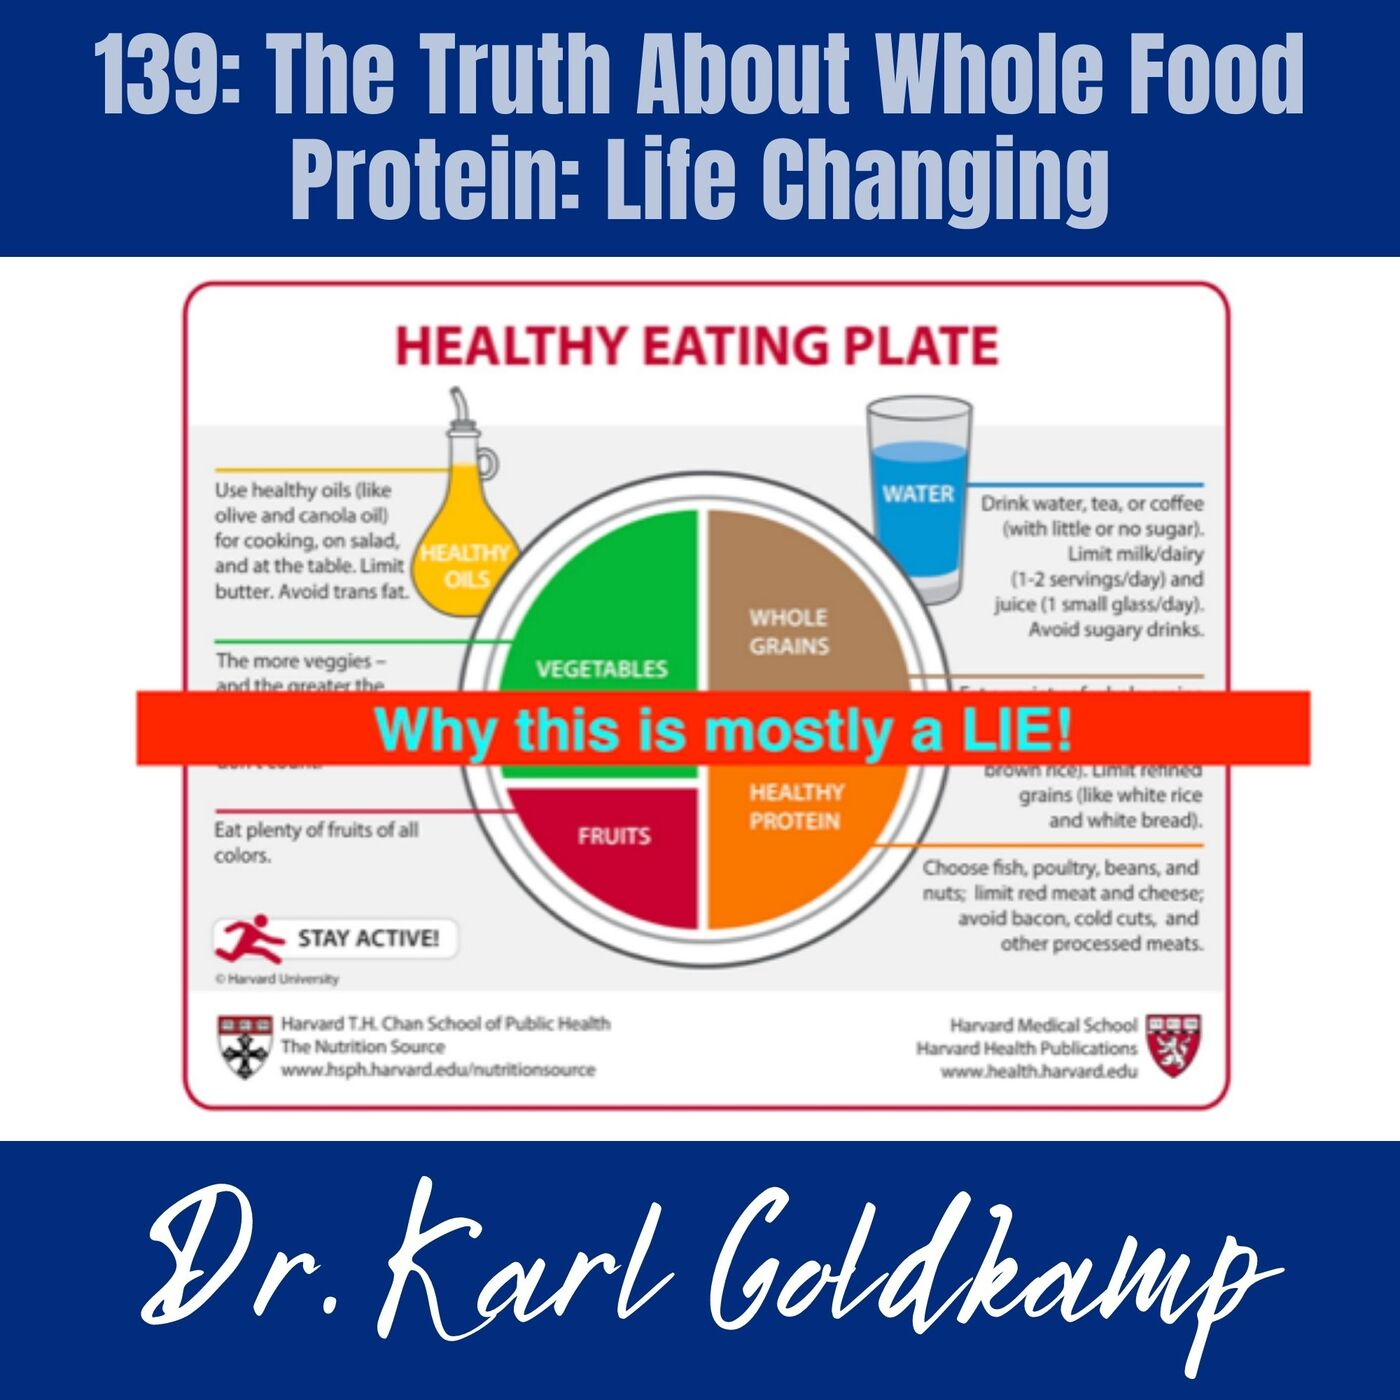 139: The Truth About Whole Food Protein: Life Changing